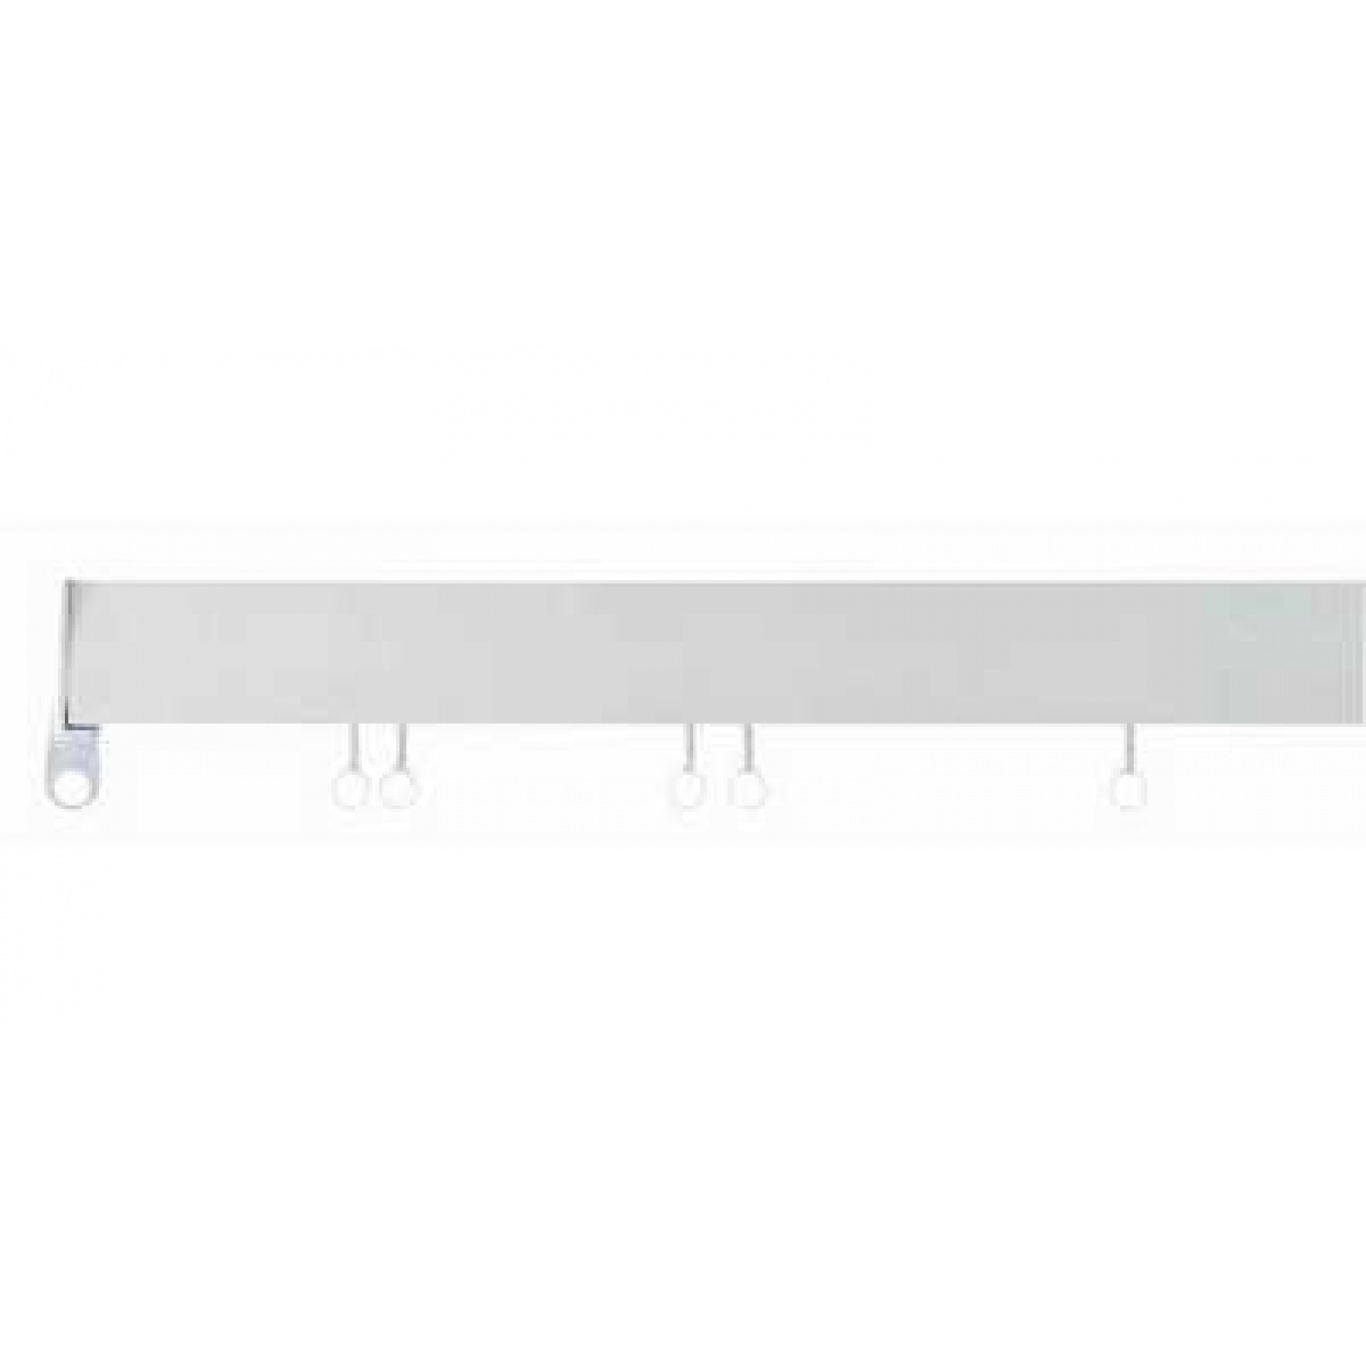 Image of Swish Deluxe White PVC Track 225cm